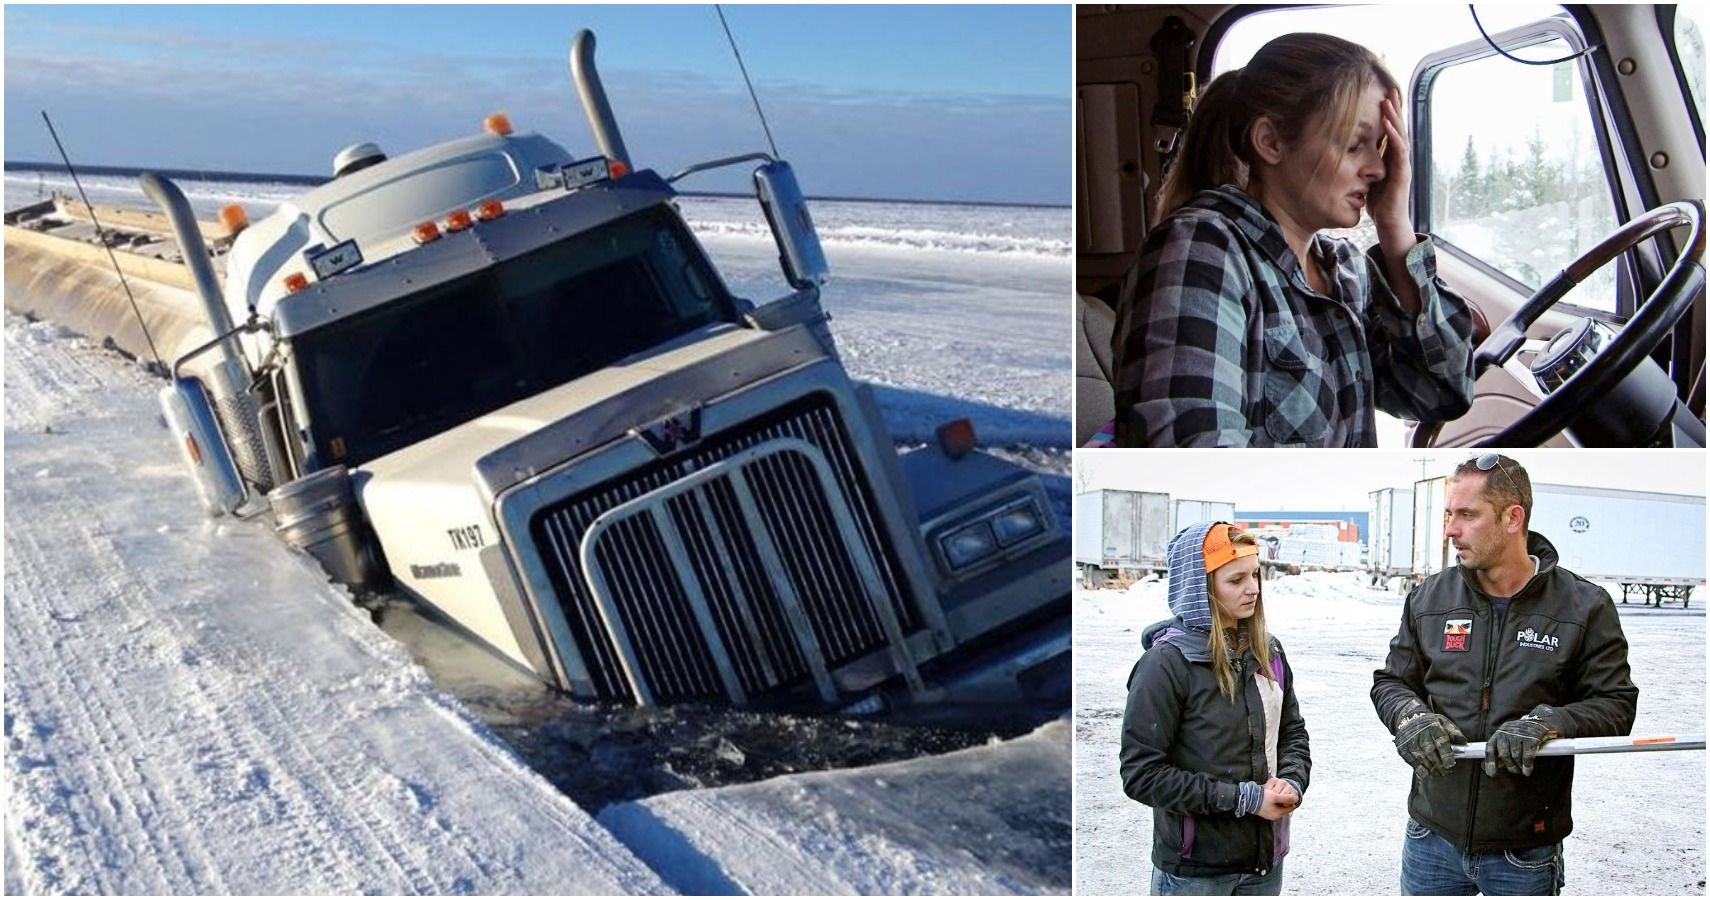 What The Cast Of Ice Road Truckers Don't Tell Us